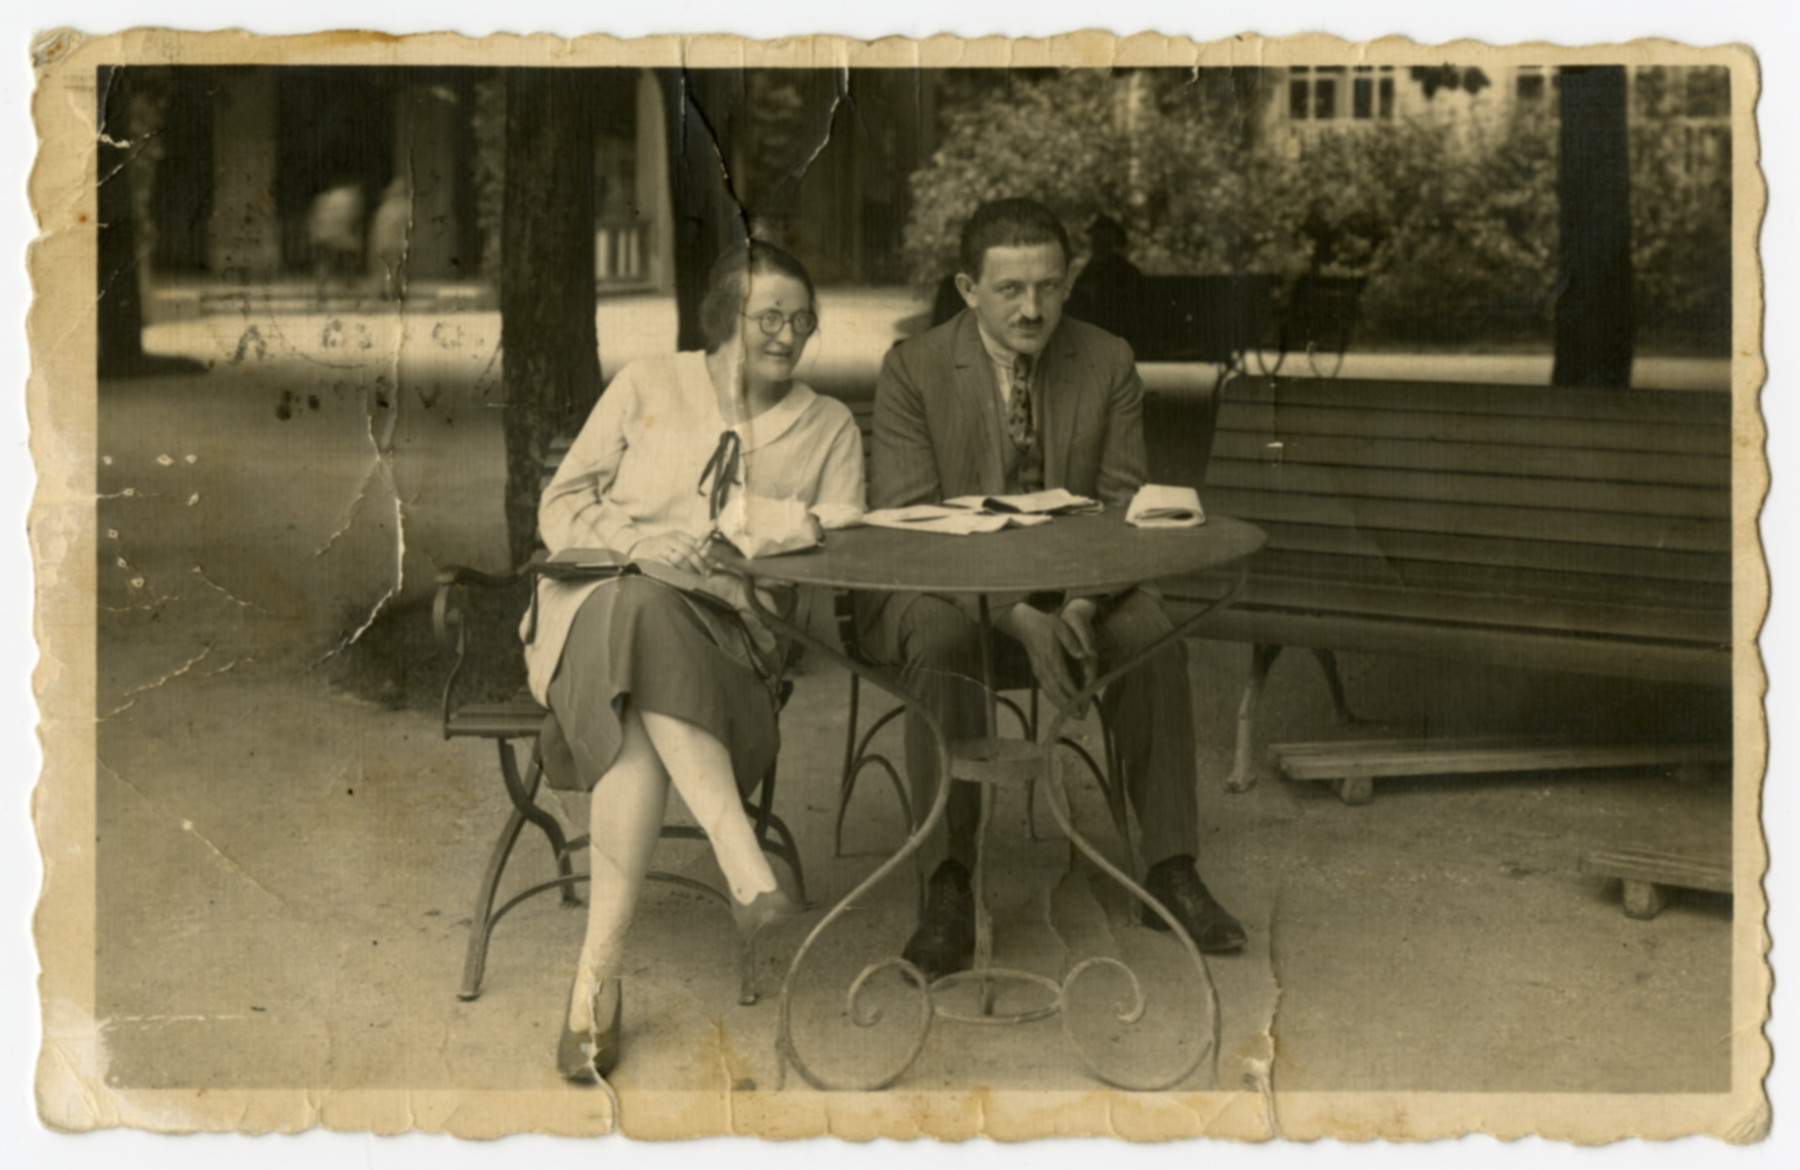 Bertha and Emil Forchheimer rest at an outdoor table while on their honeymoon.